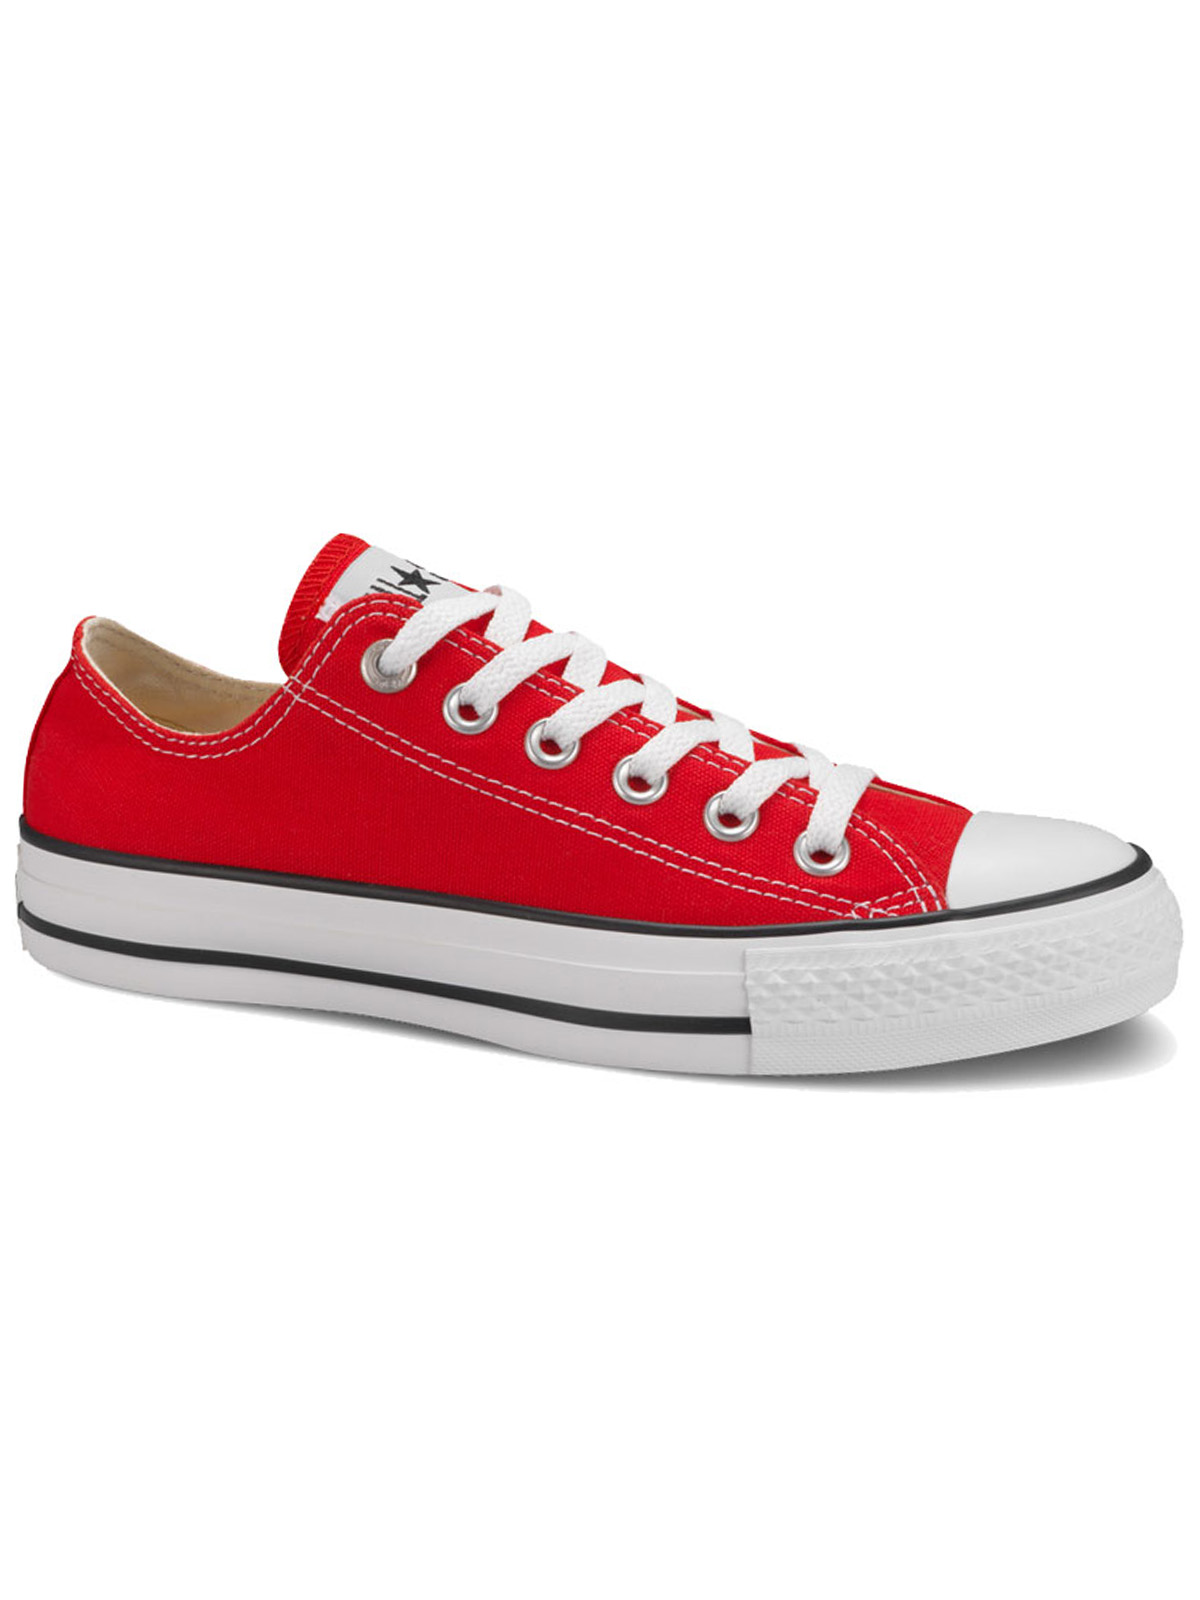 All Star ox canvas red XM9696